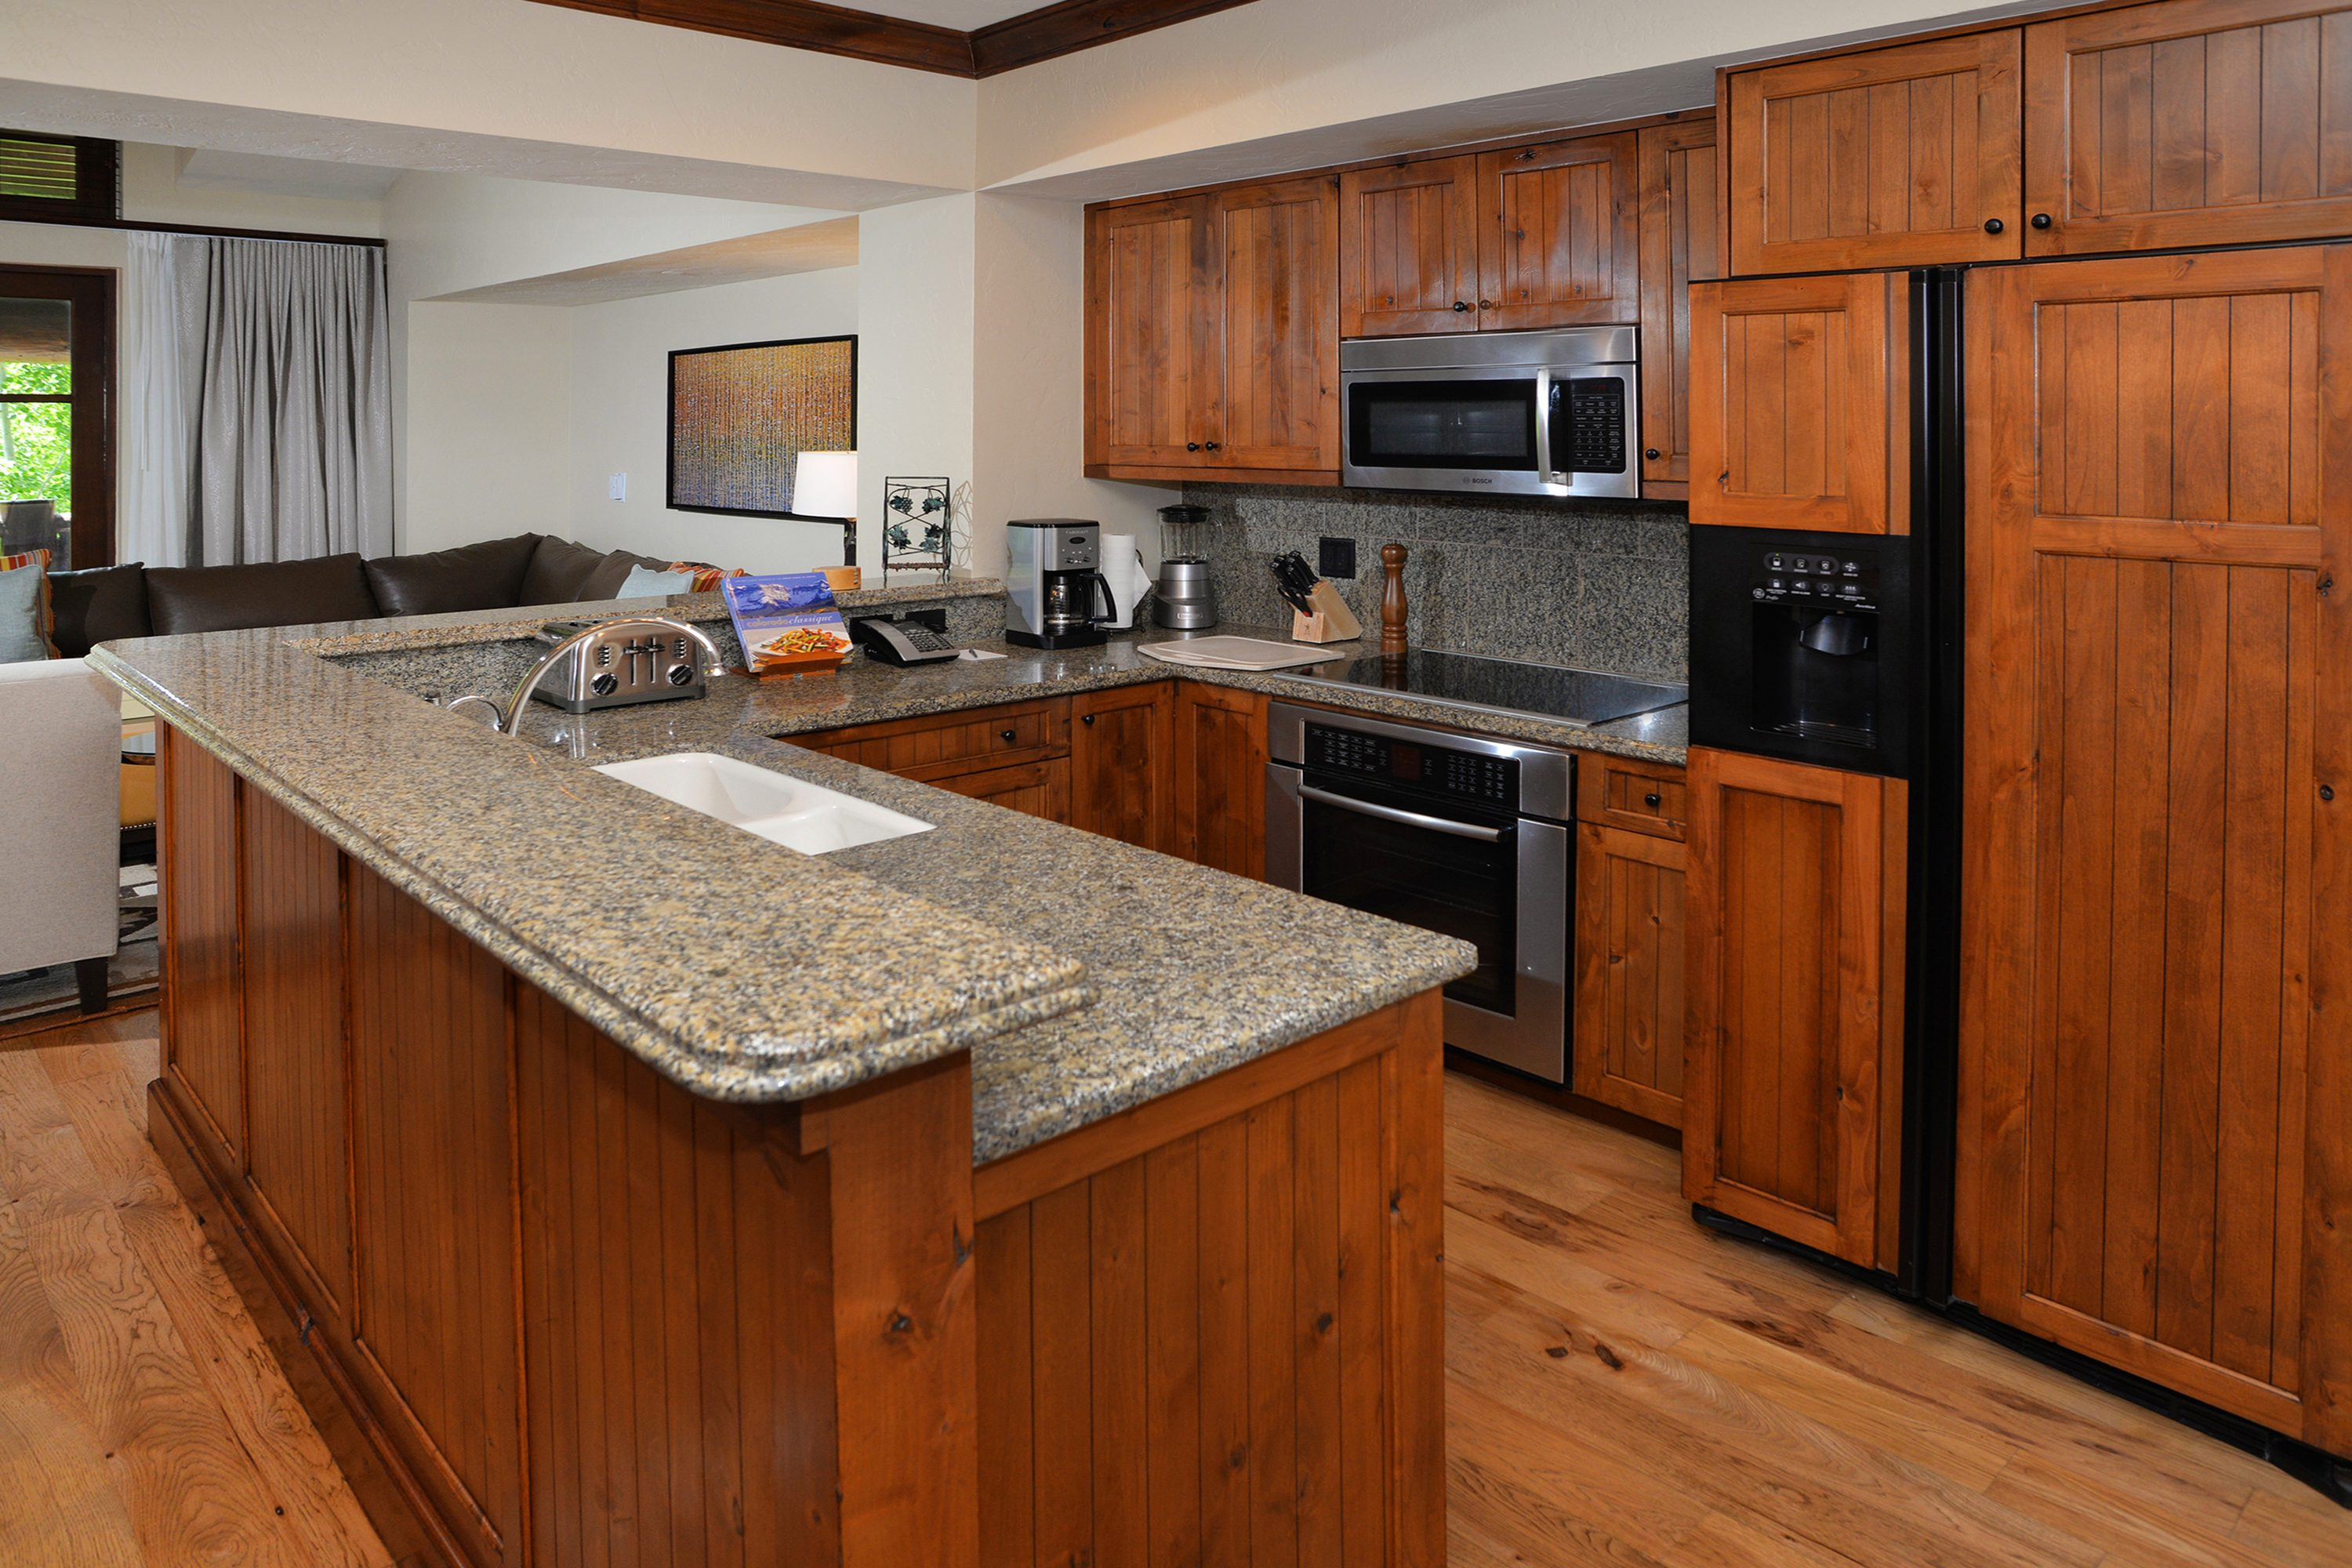 Timbers Bachelor Gulch 3604 - 3 bed Valley Rental